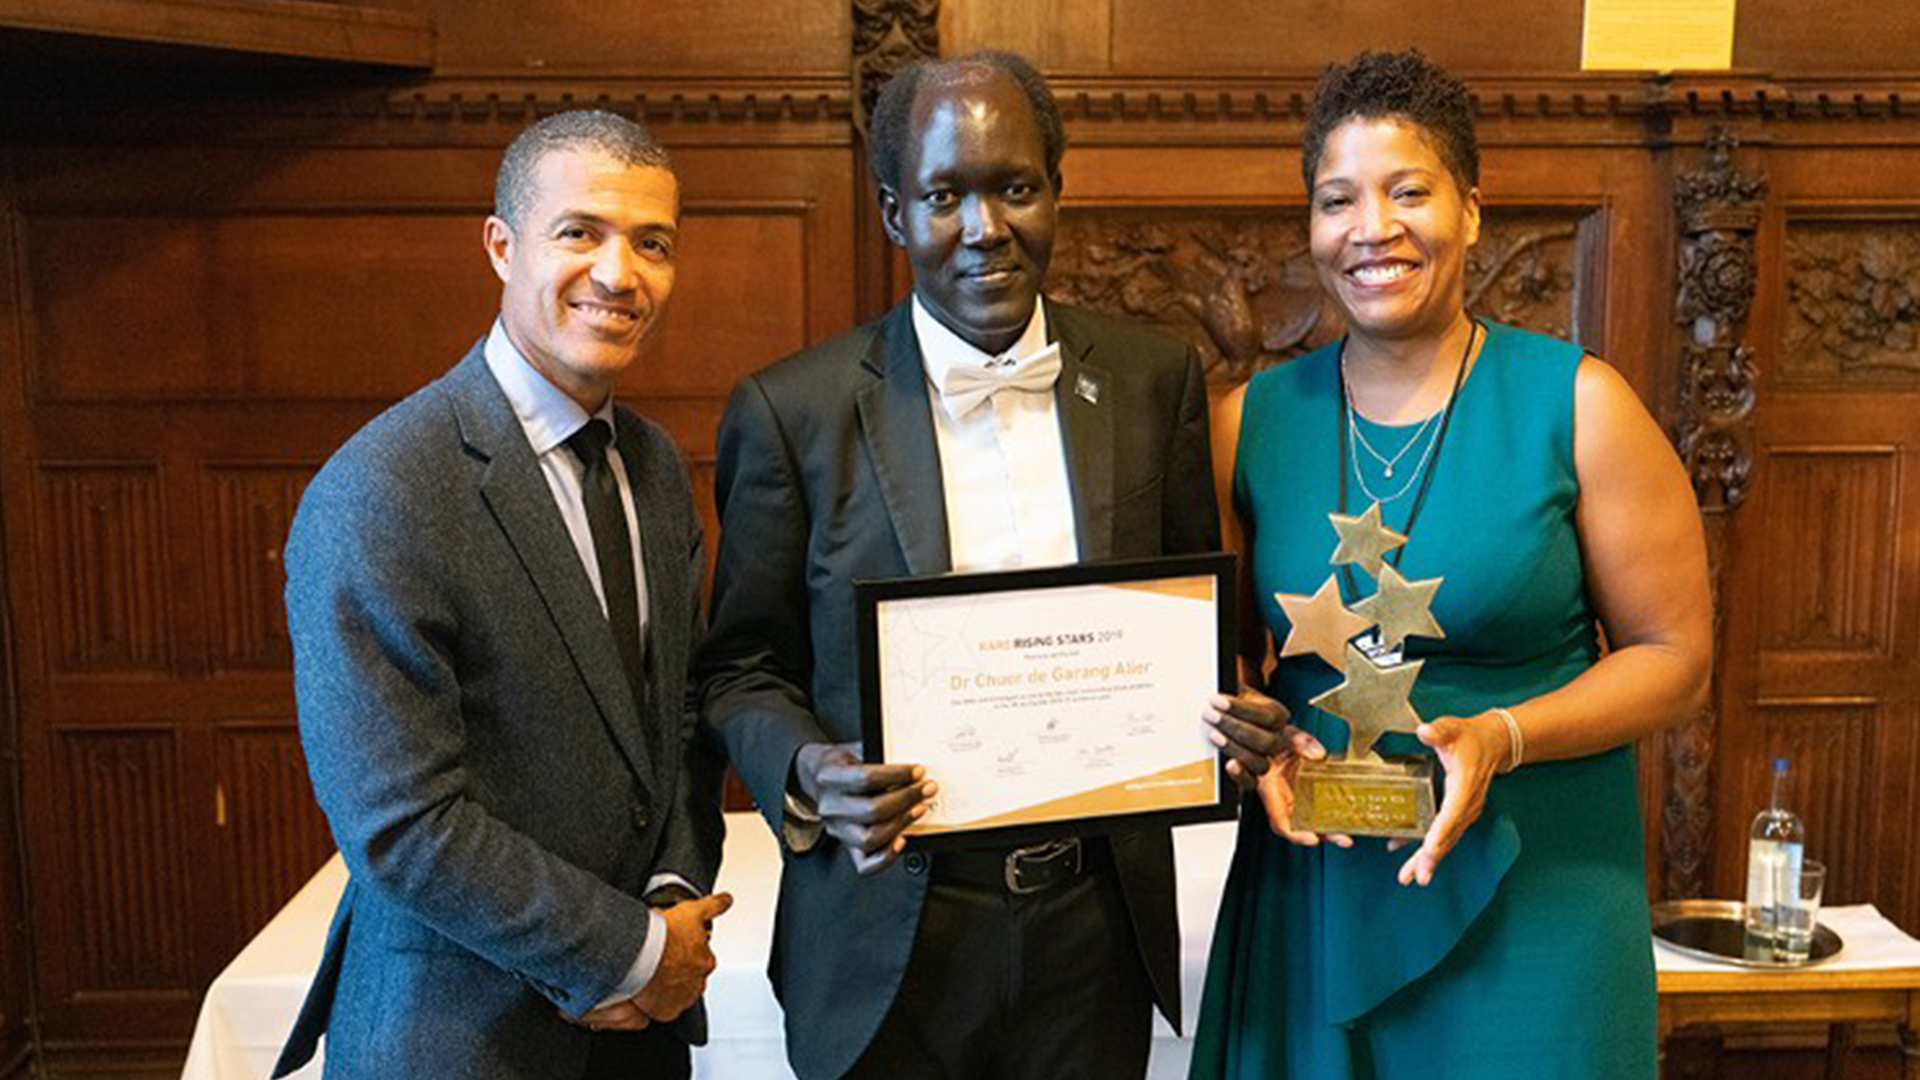 A dream conceived in South Sudan: Oxford scholar wins academic award